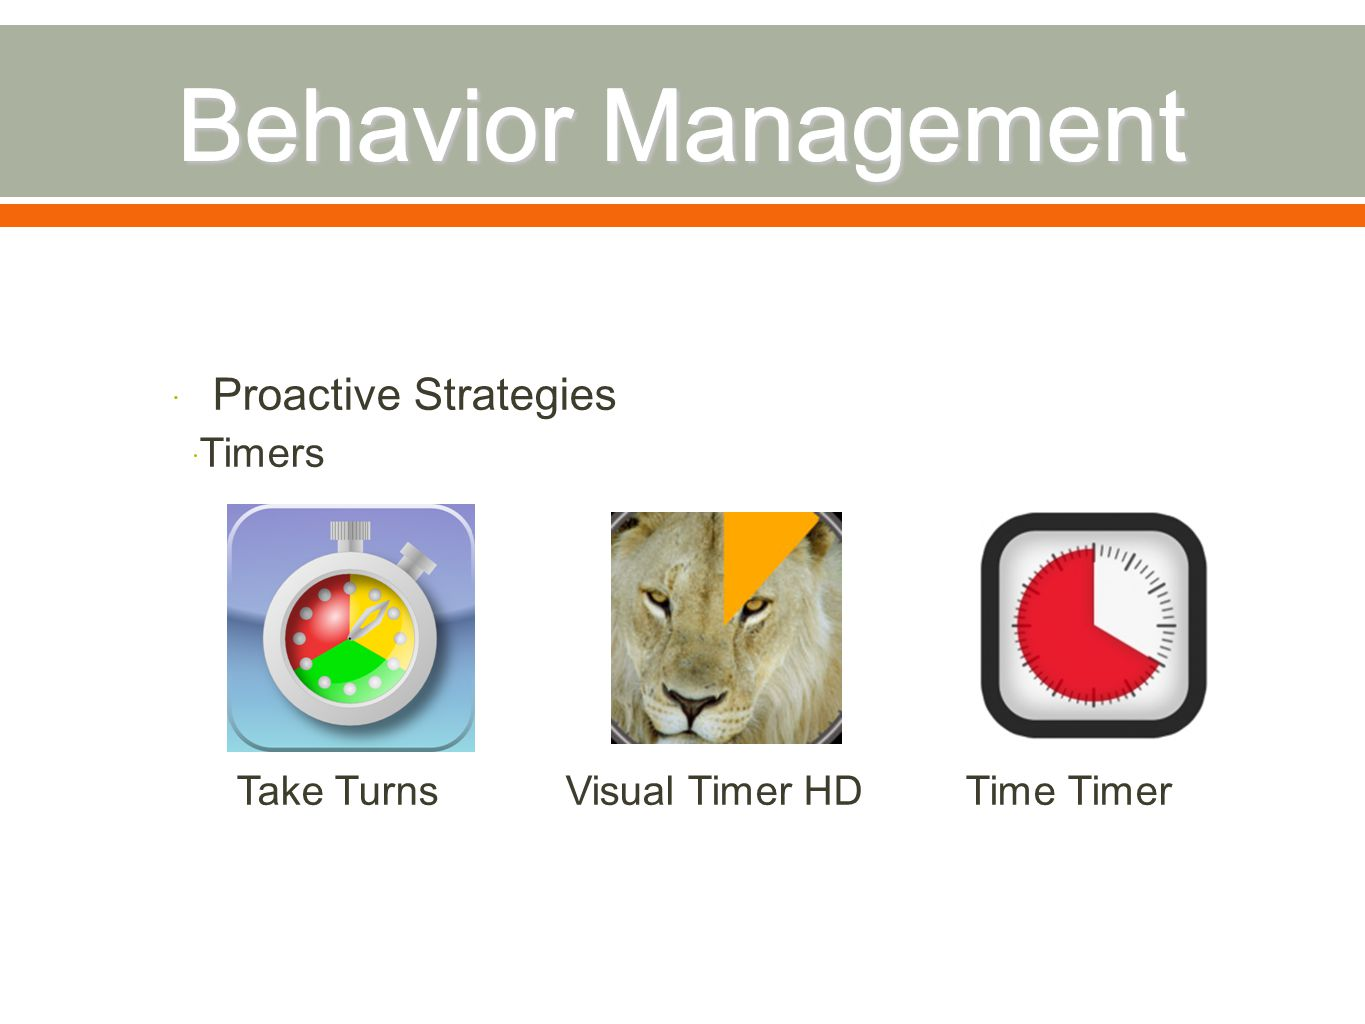  Proactive Strategies  Timers Take Turns Visual Timer HD Time Timer